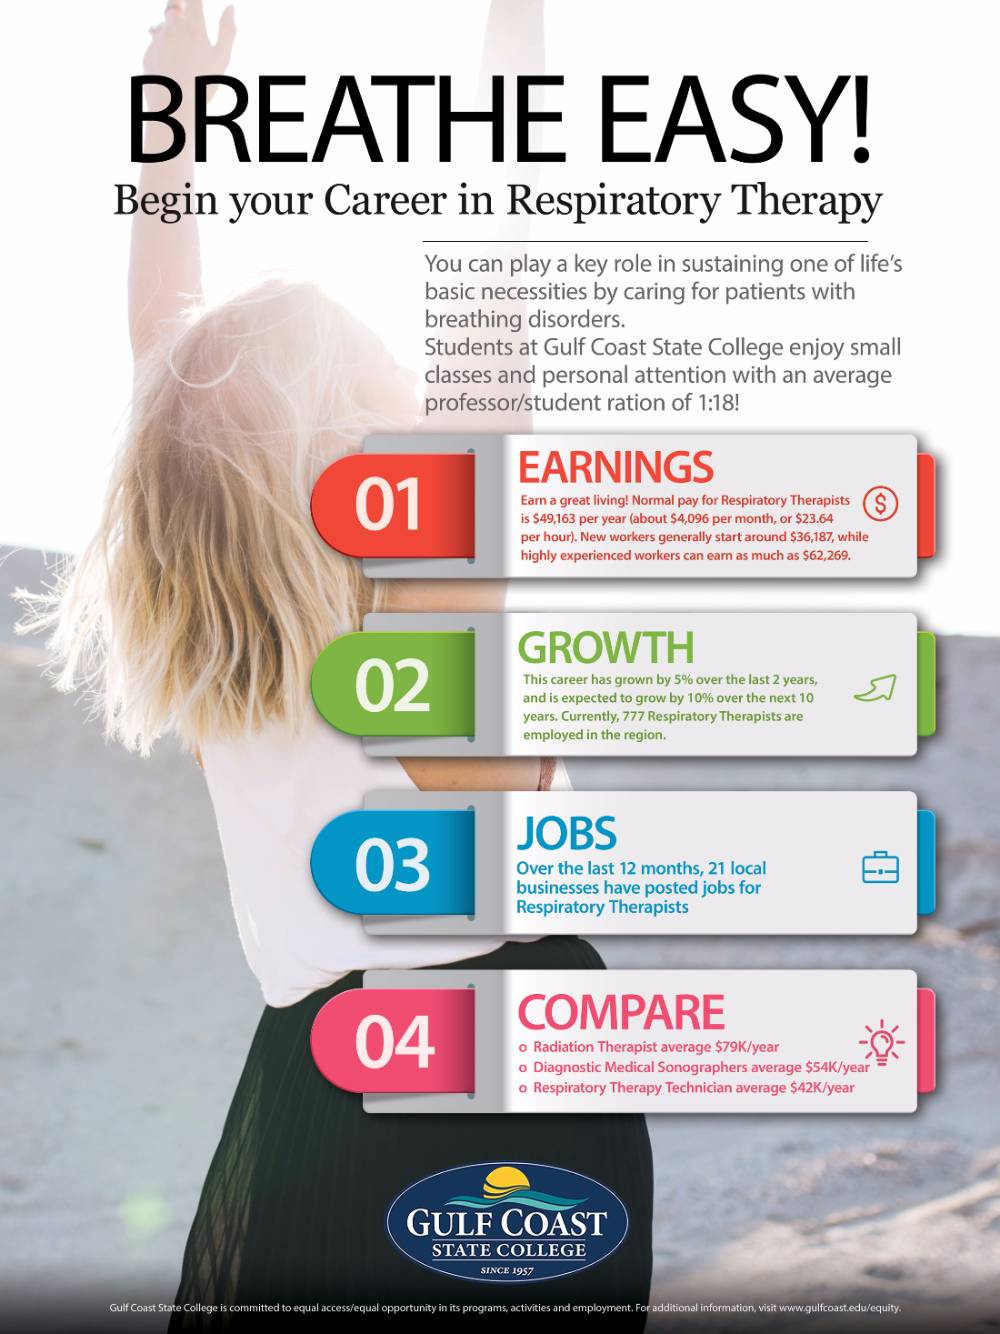 Breathe Easy! Begin your Career in Respiratory Therapy